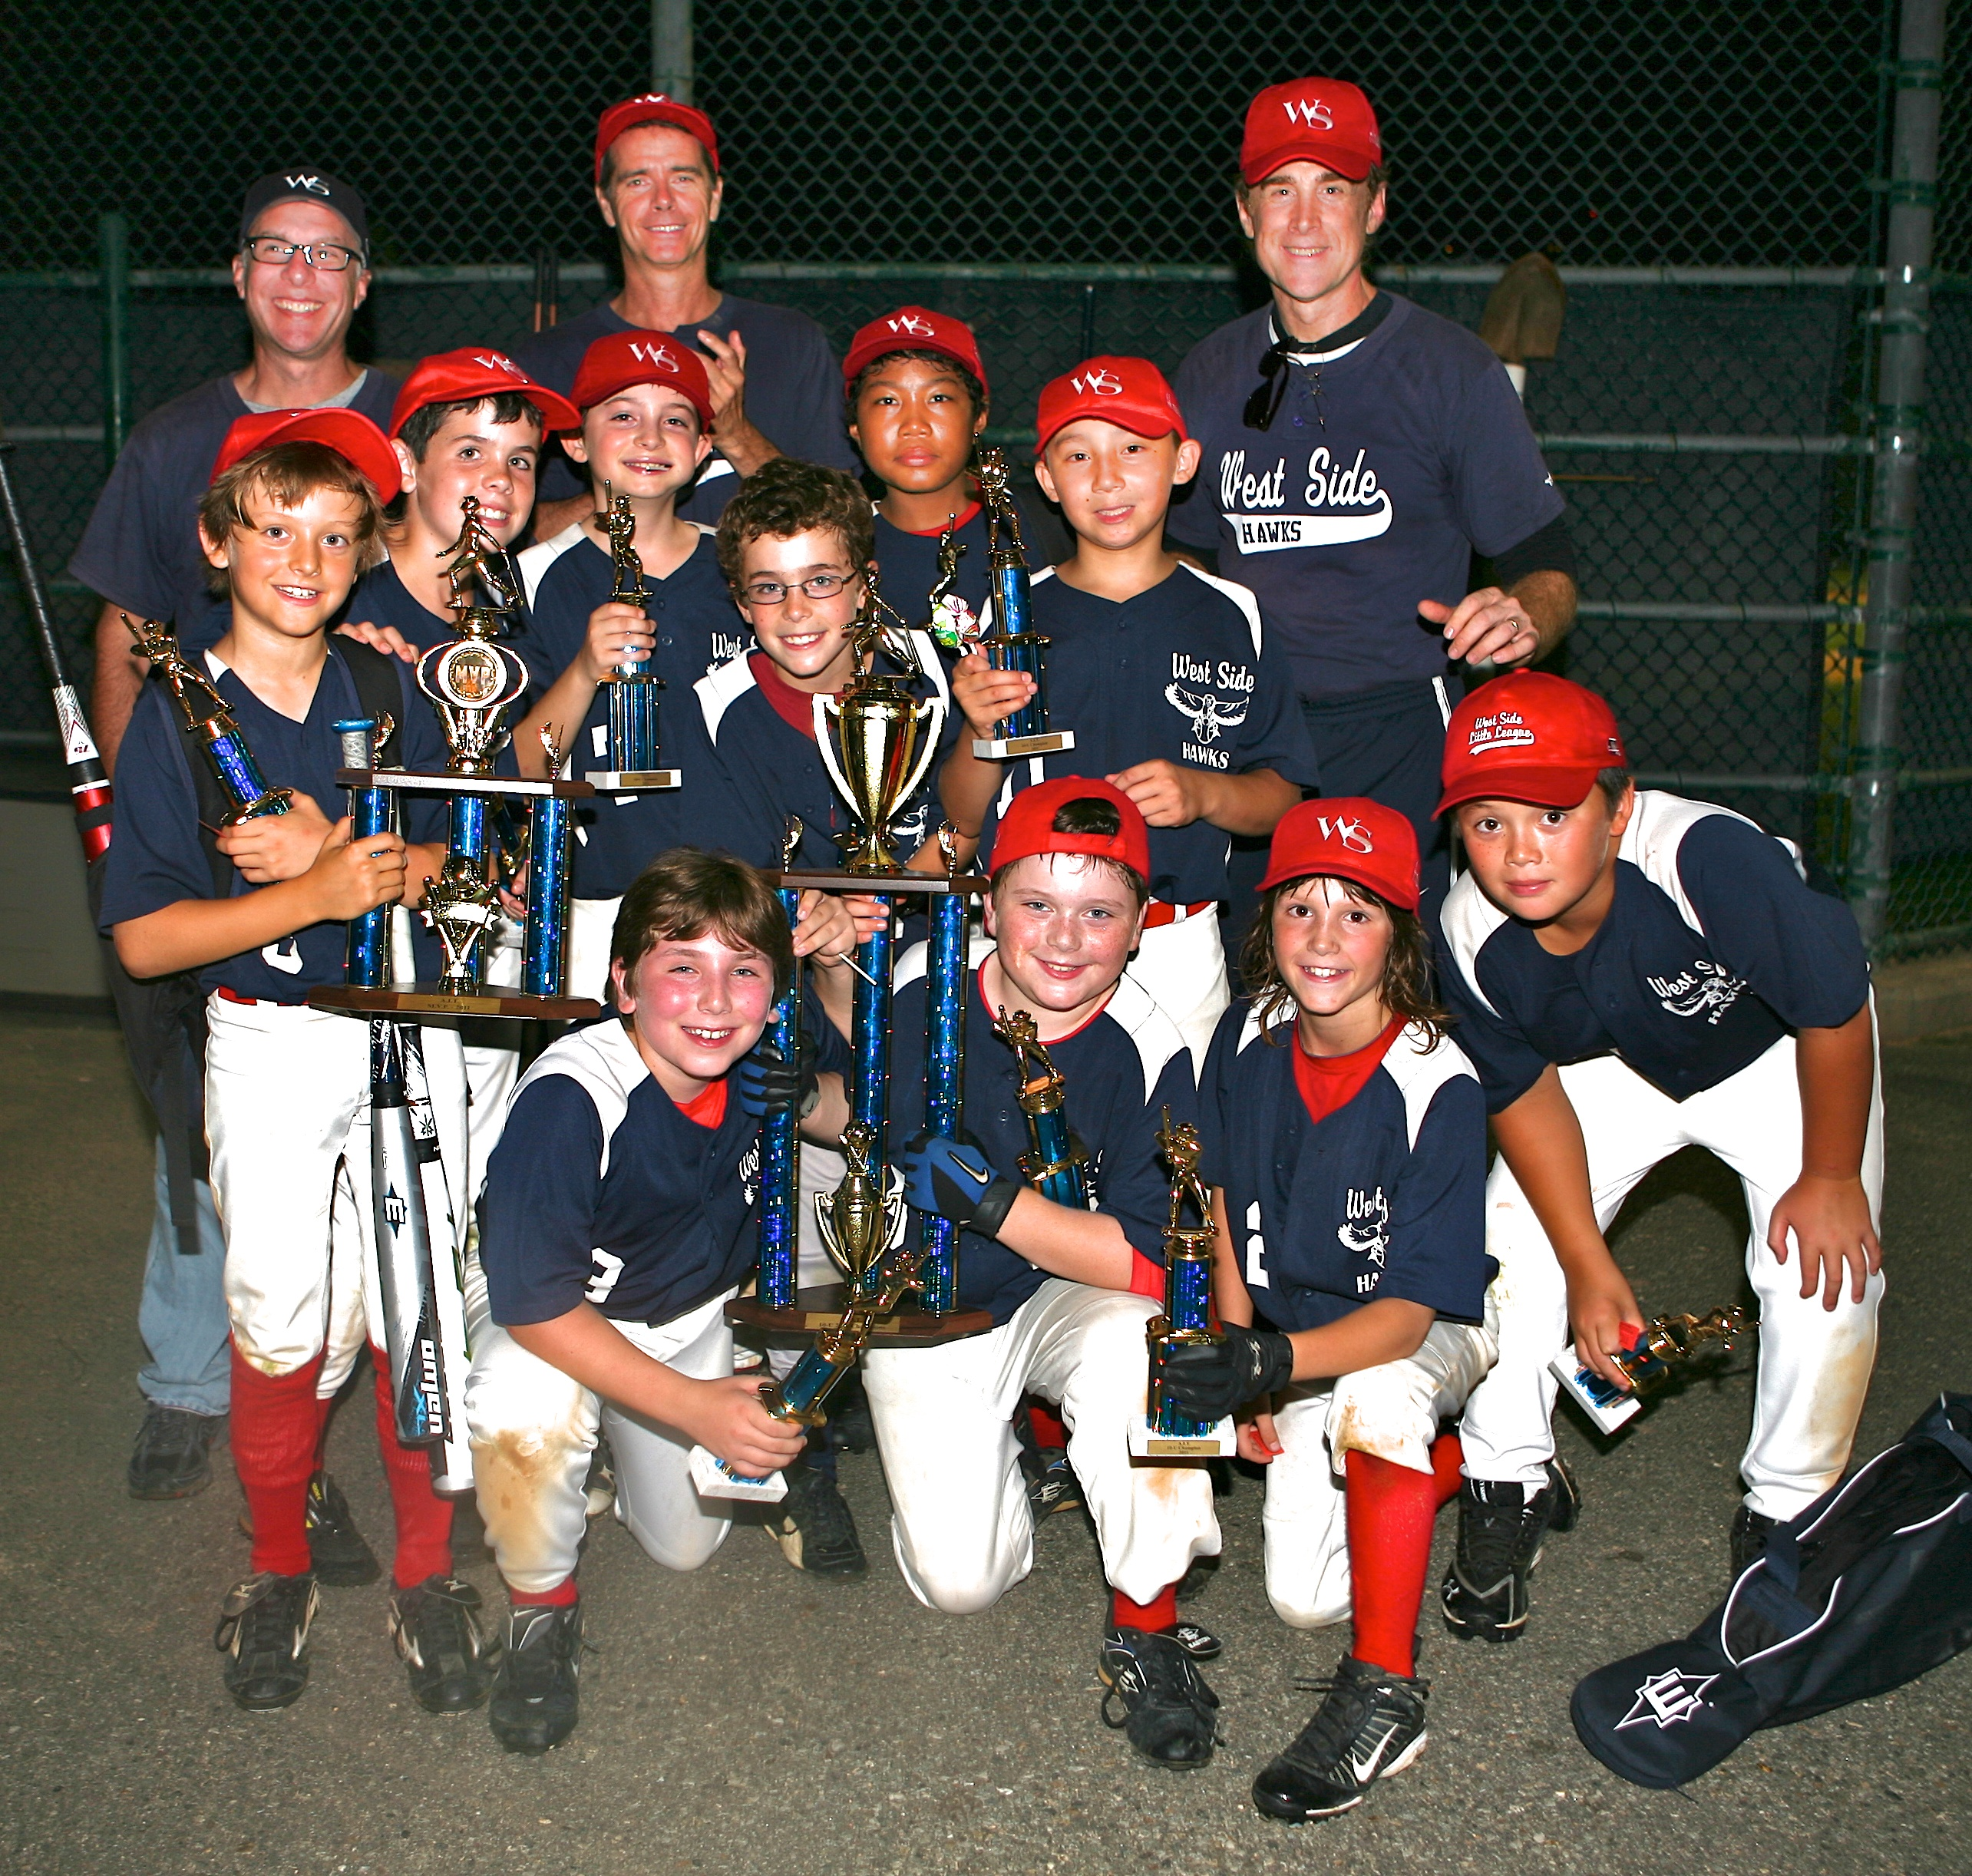 10U Hawks - 2011 Astor Tournament Champions!